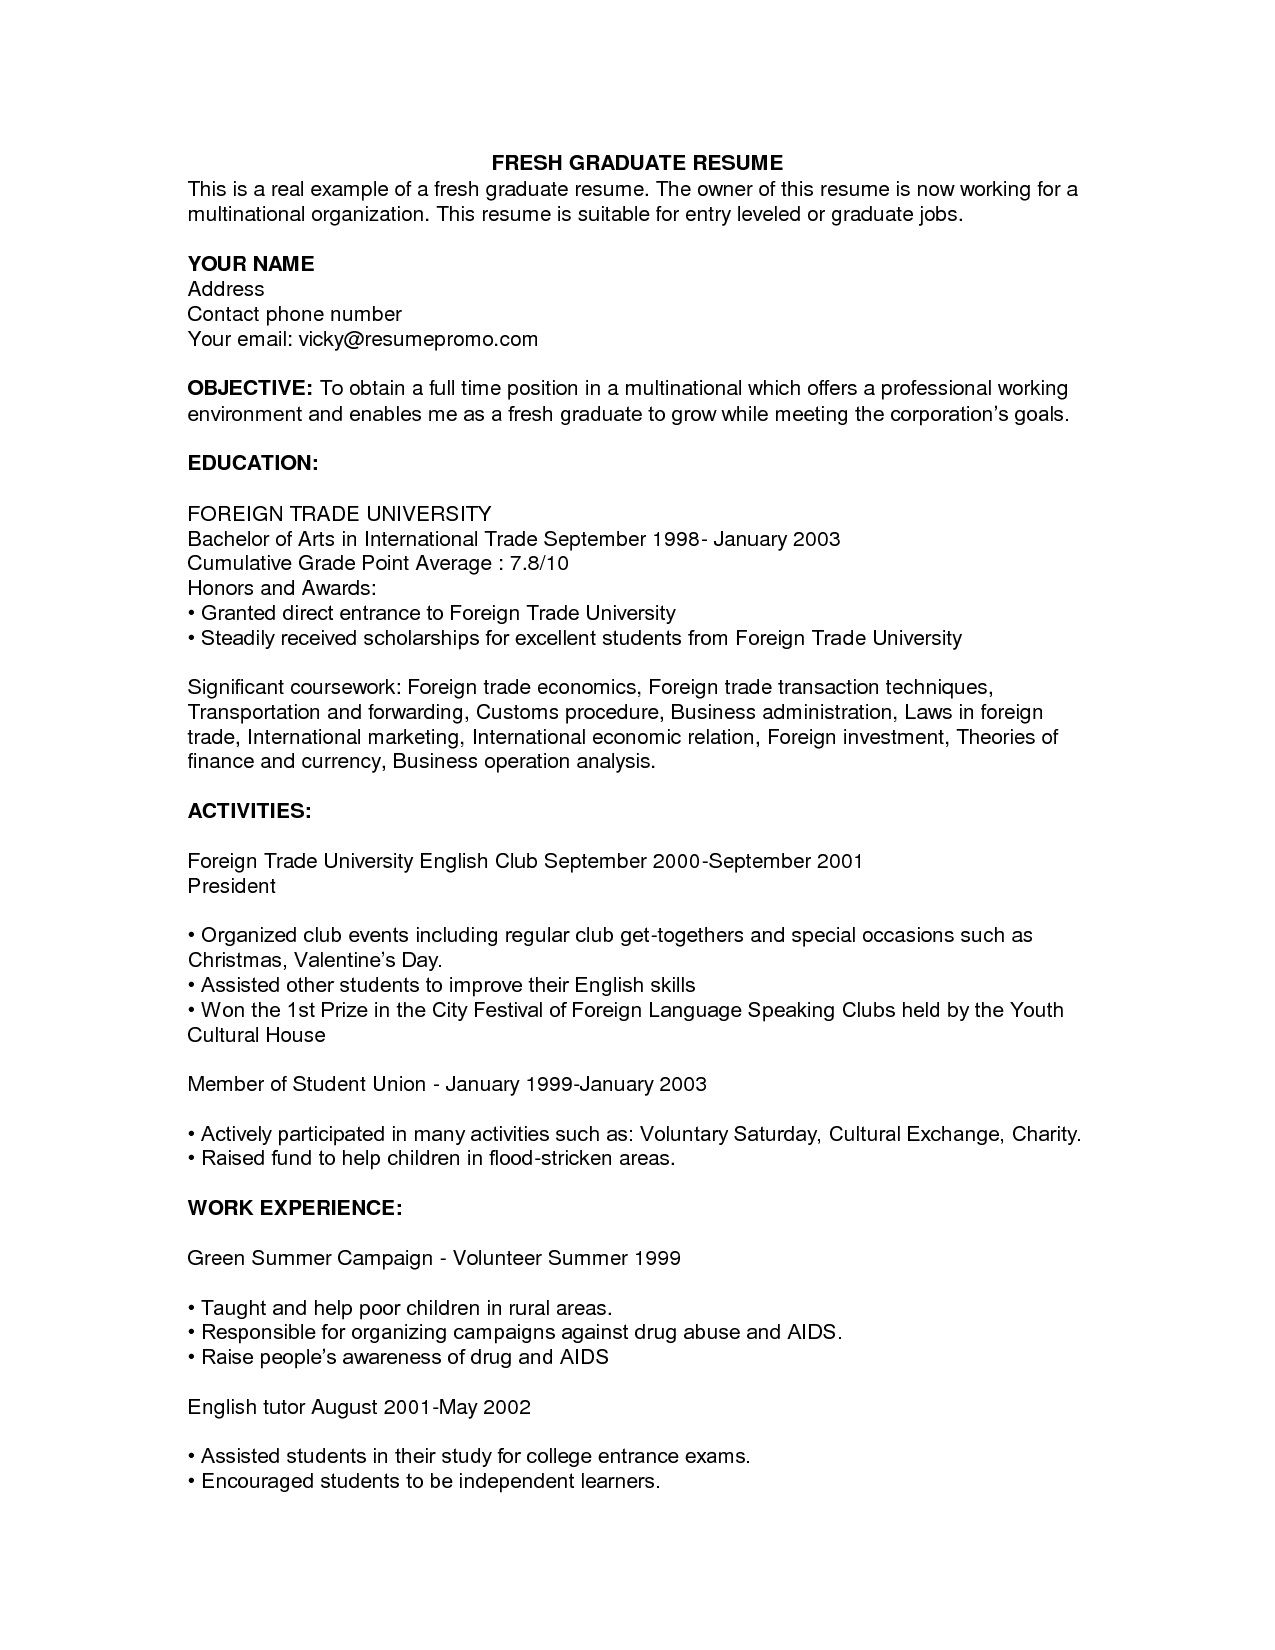 job resume templates career you need correct more forward